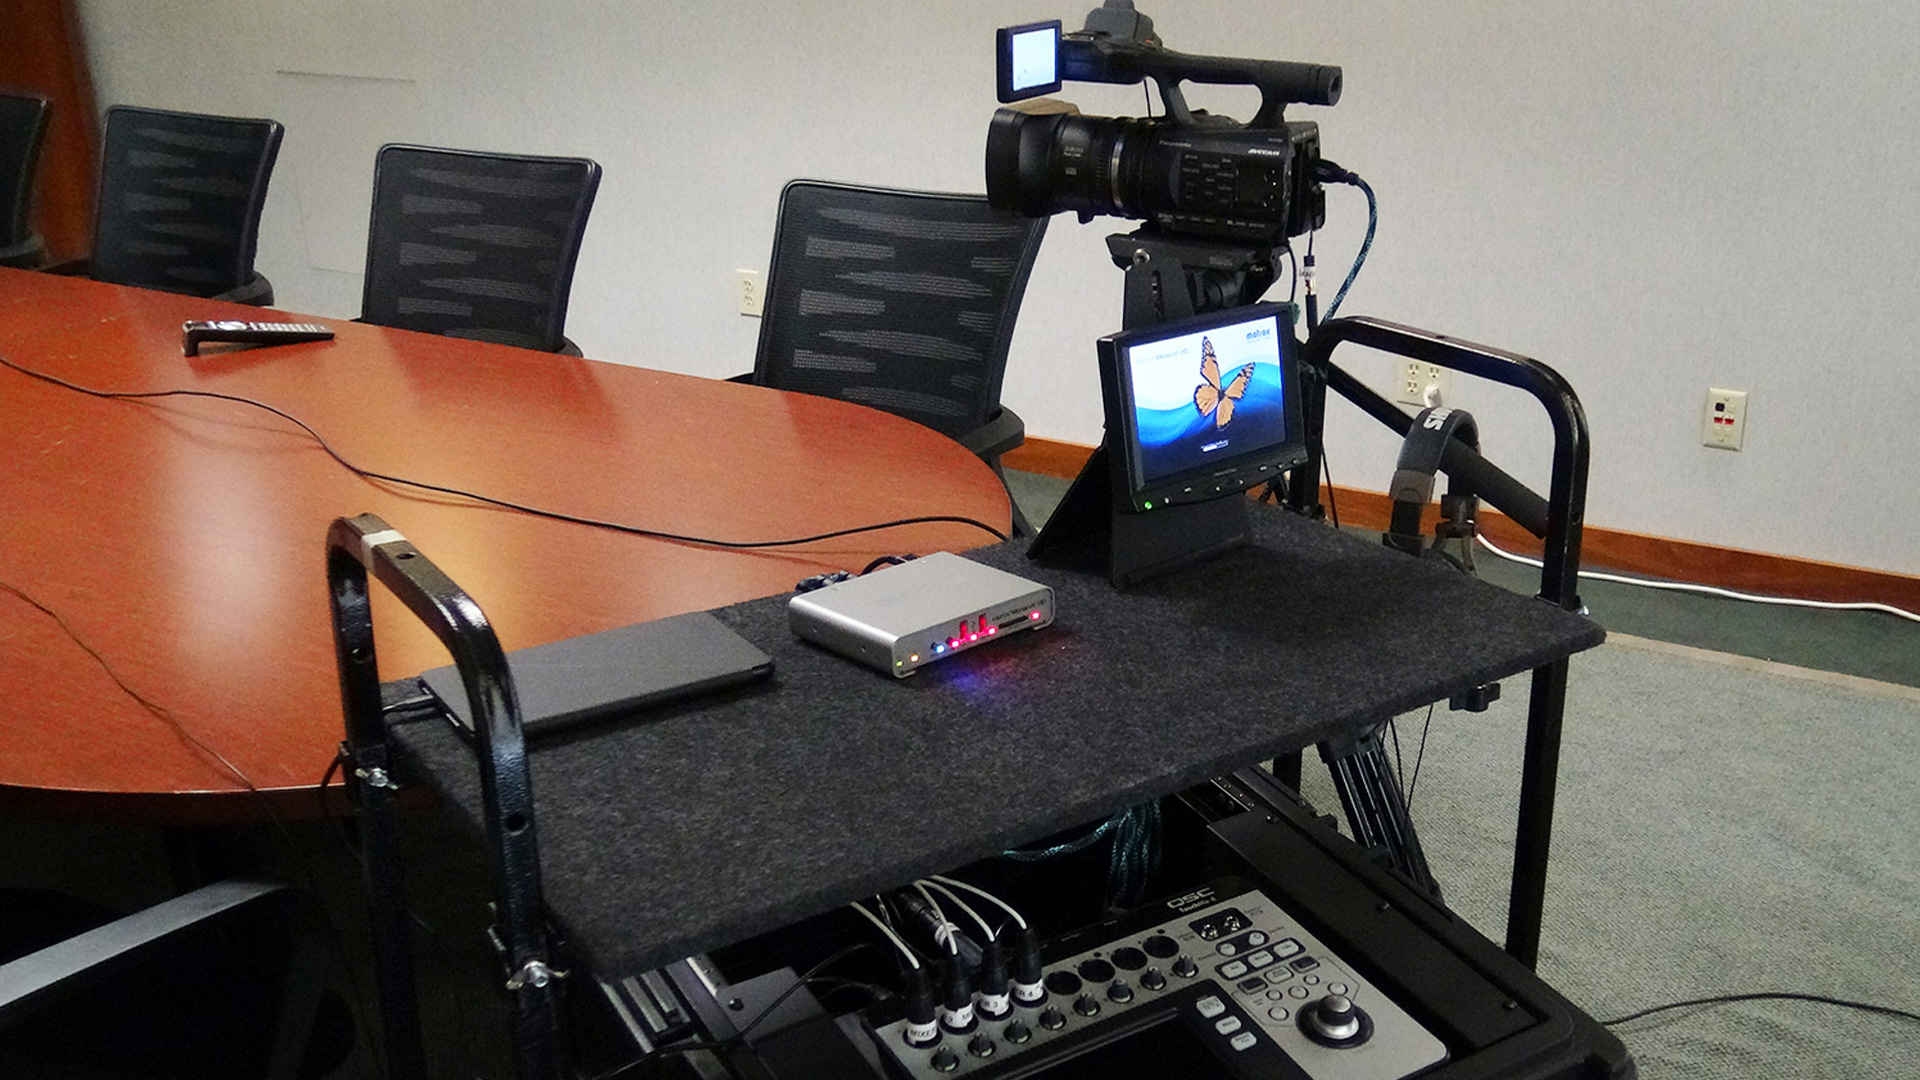 The Matrox Monarch HD streaming and recording appliance is a key component of the video installation at Huney-Vaughn Court Reporters.